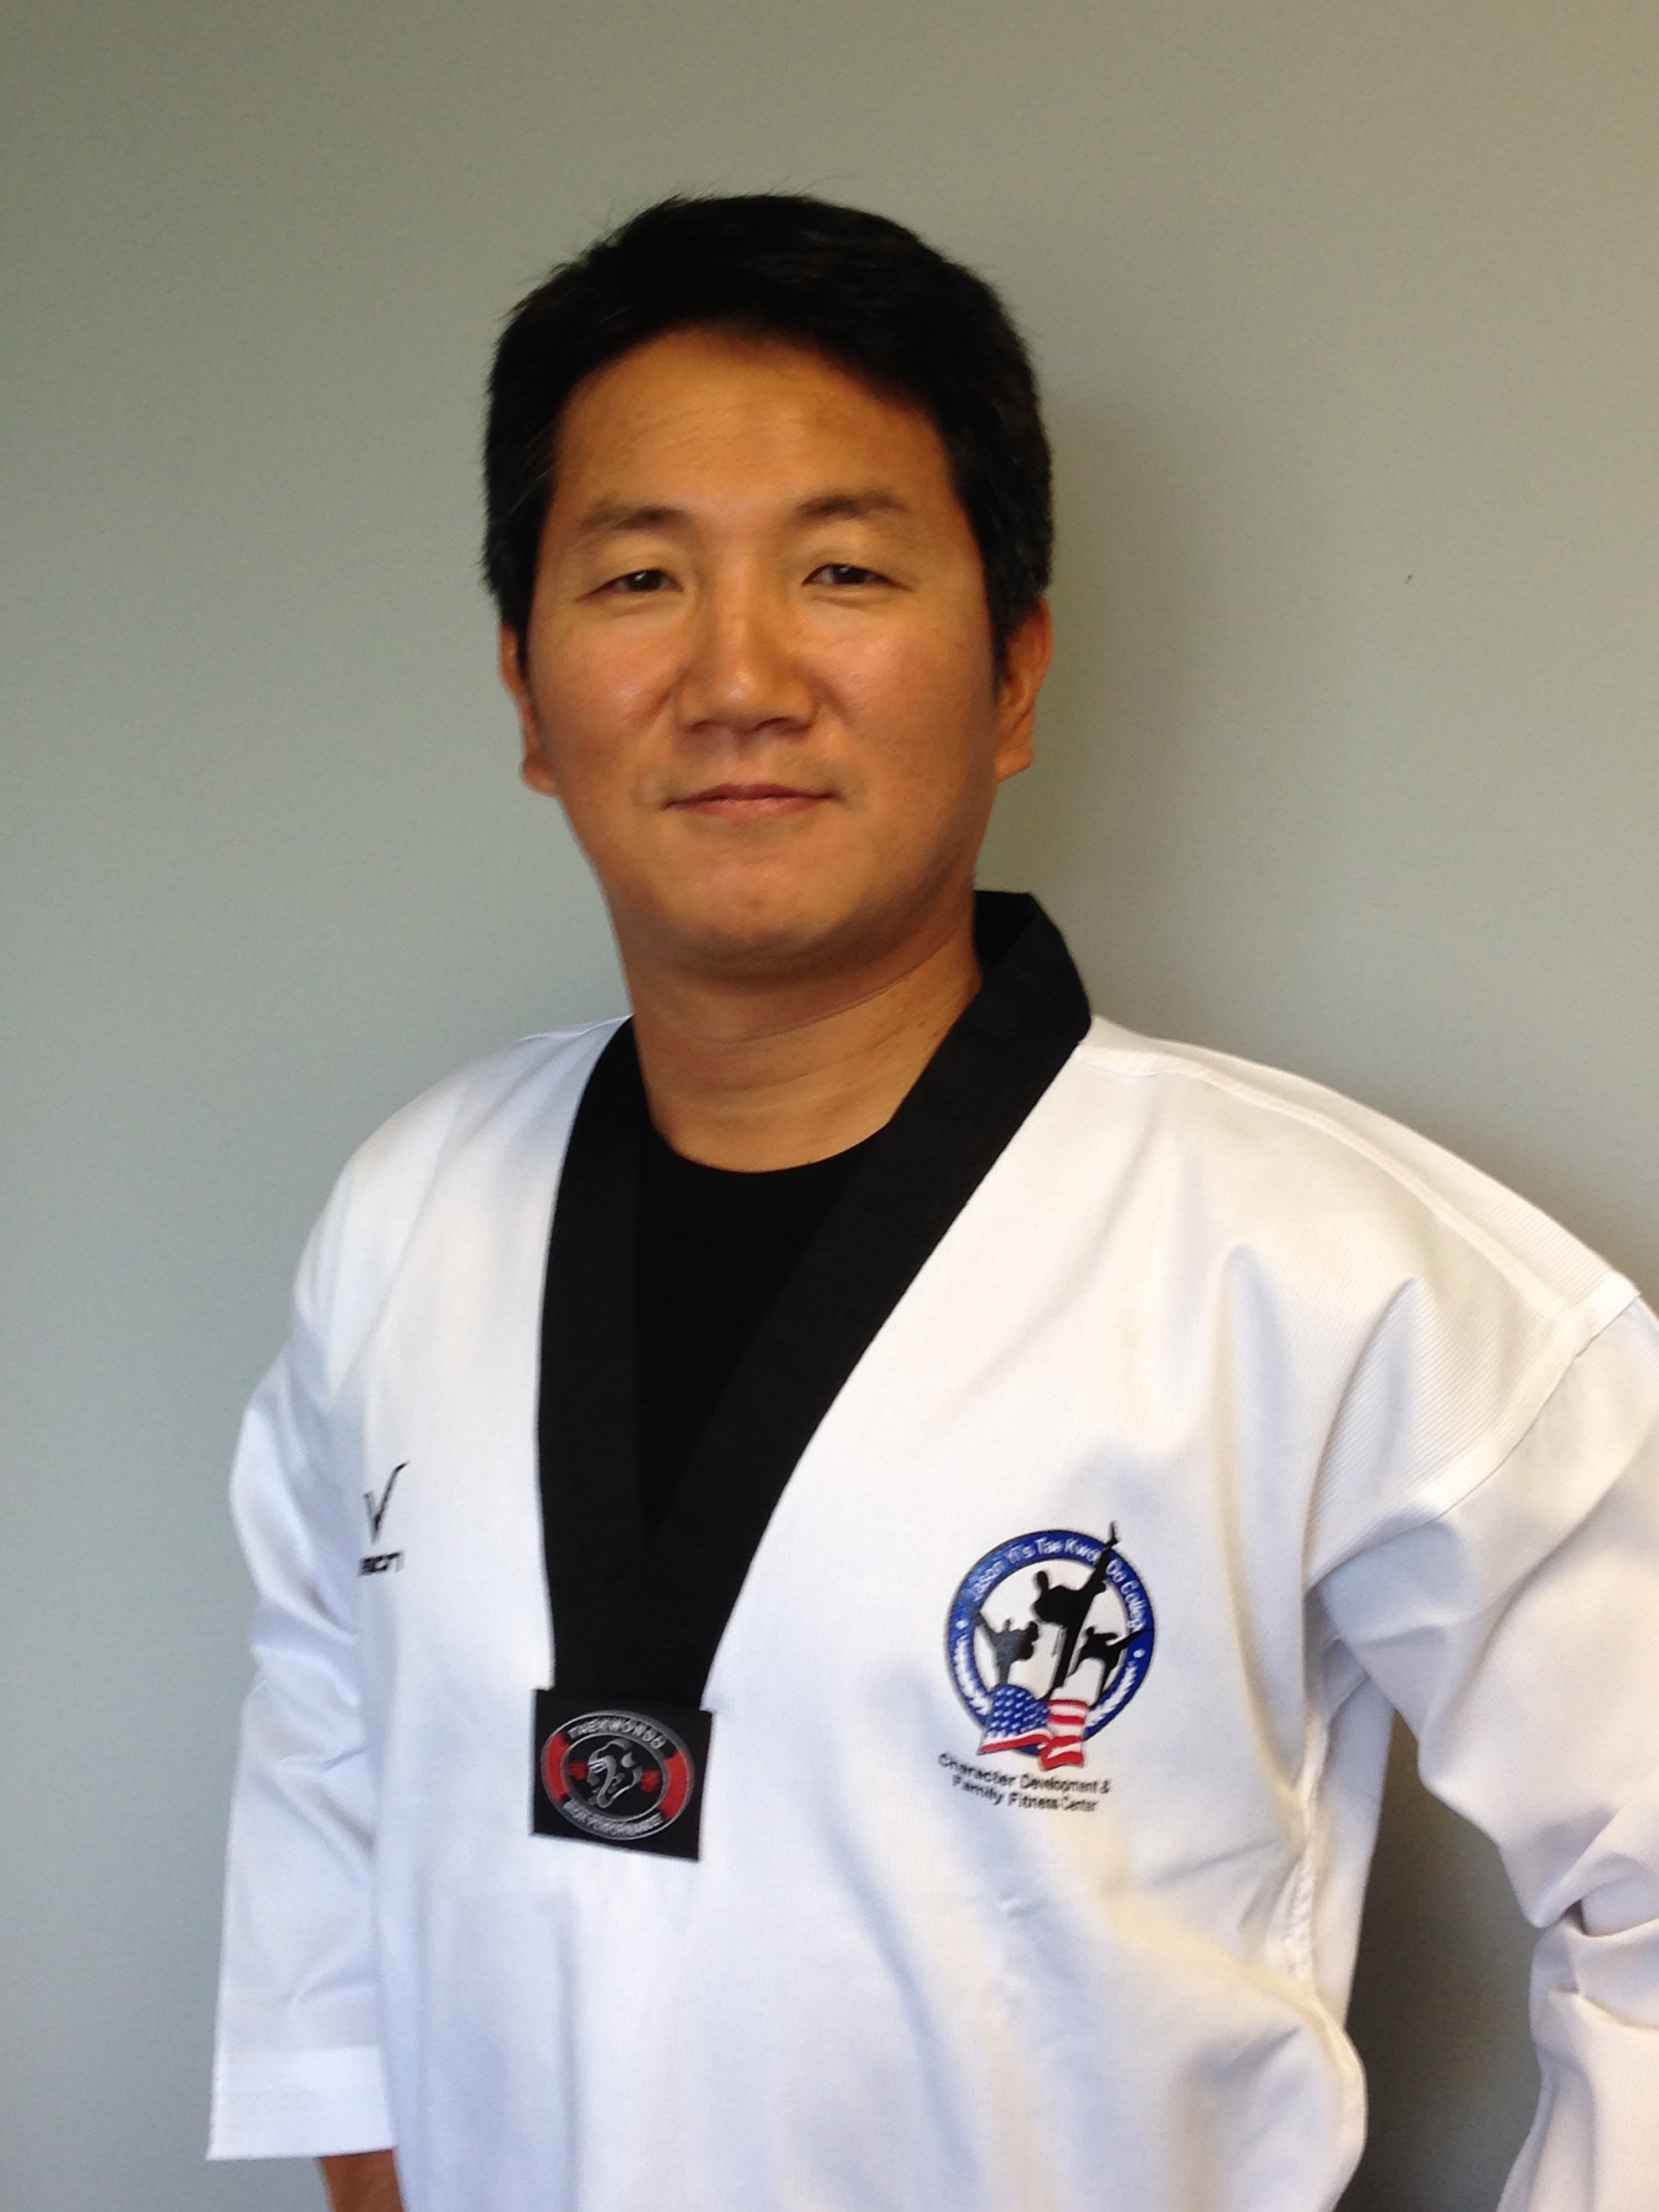 Jason Yi in Woodbridge - Life Champ Martial Arts